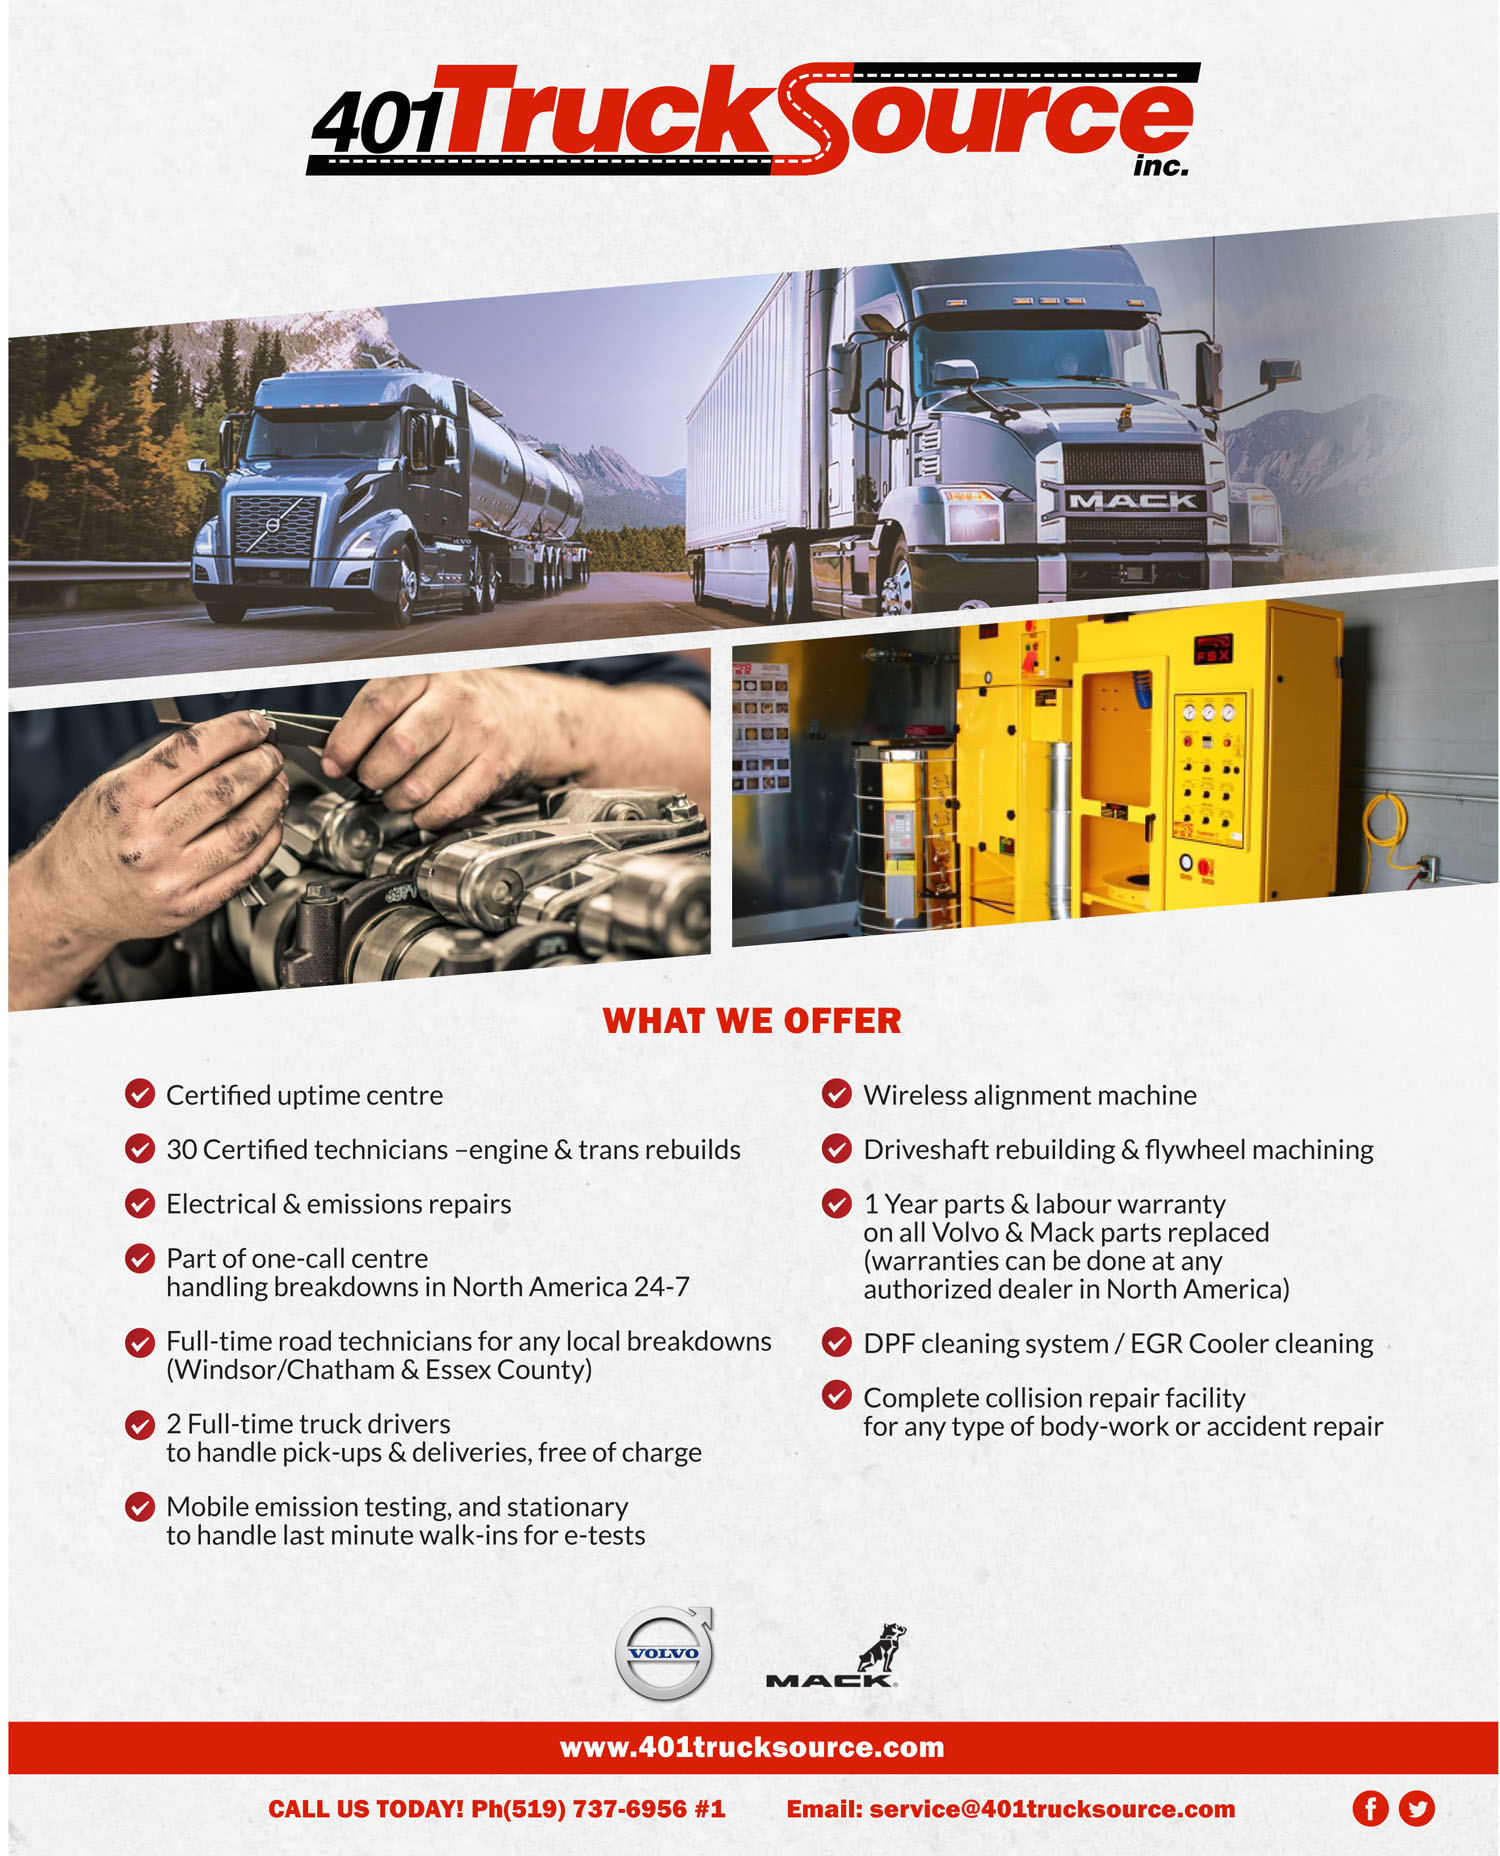 Flyer design showing a Mack and Volvo Truck along with an engine and DPF Cleaning Machine, and a list of the services offered at 401 Trucksource